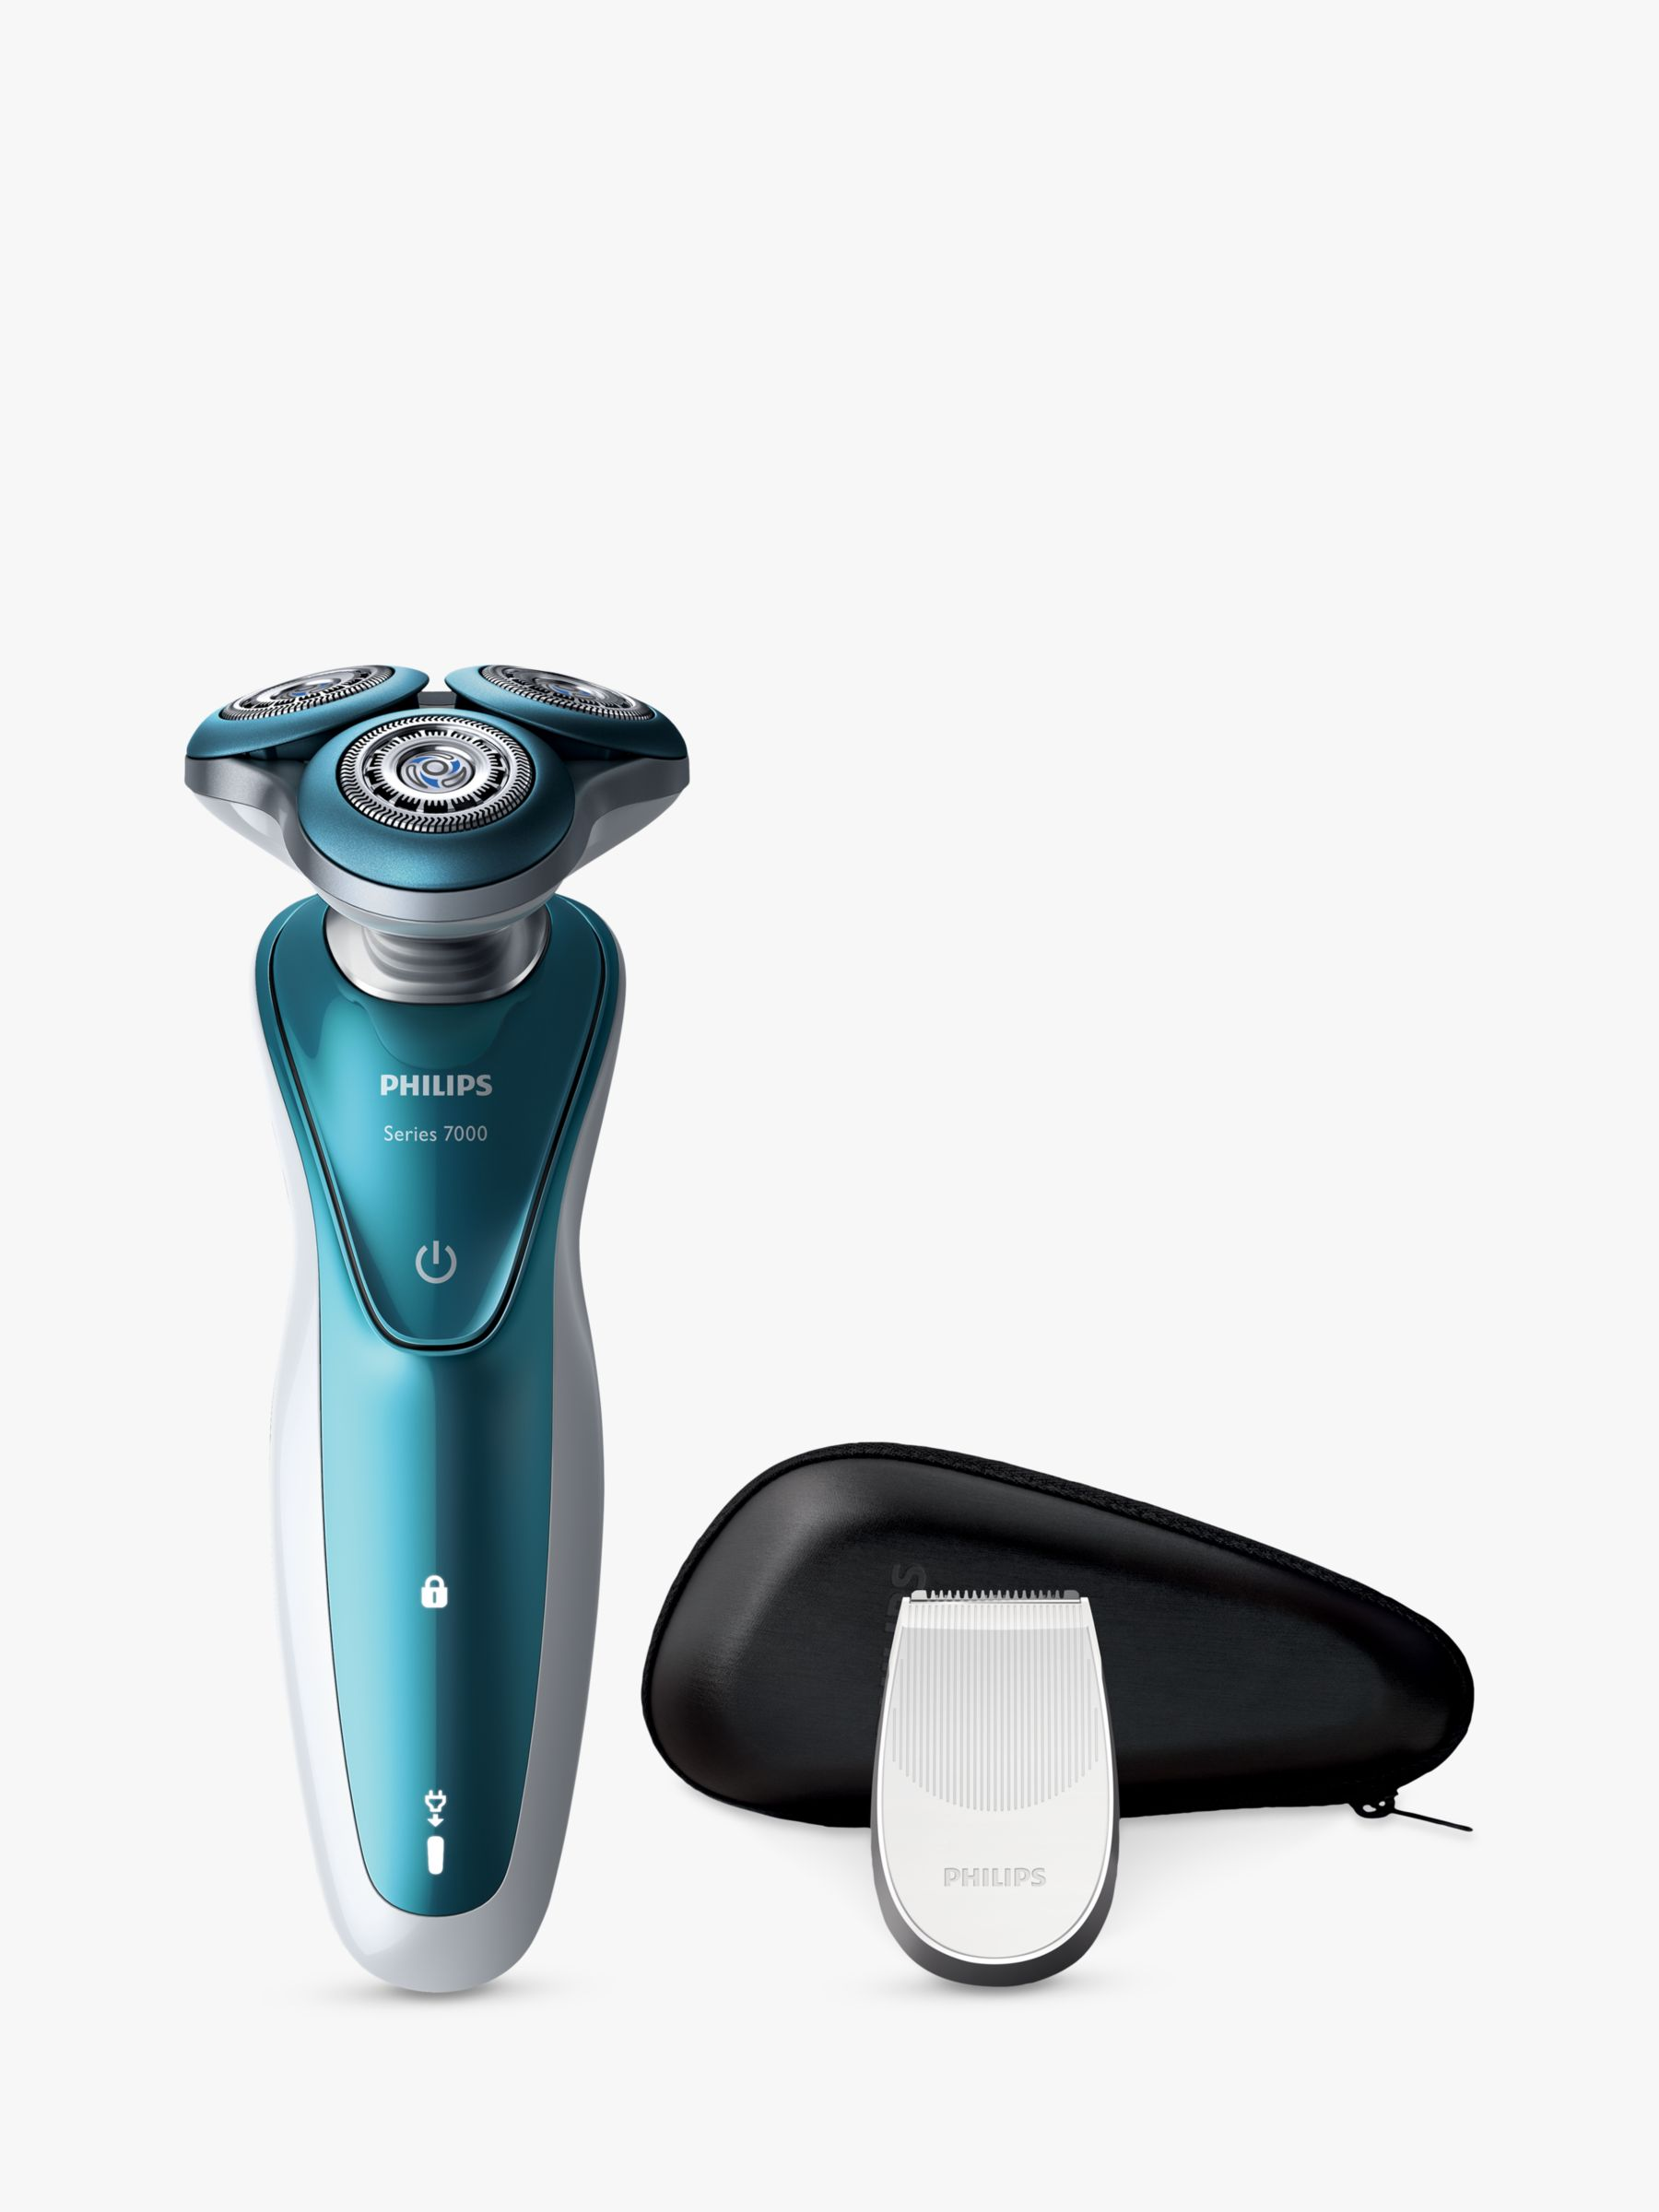 Philips S7370/12 Wet & Dry Electric Shaver